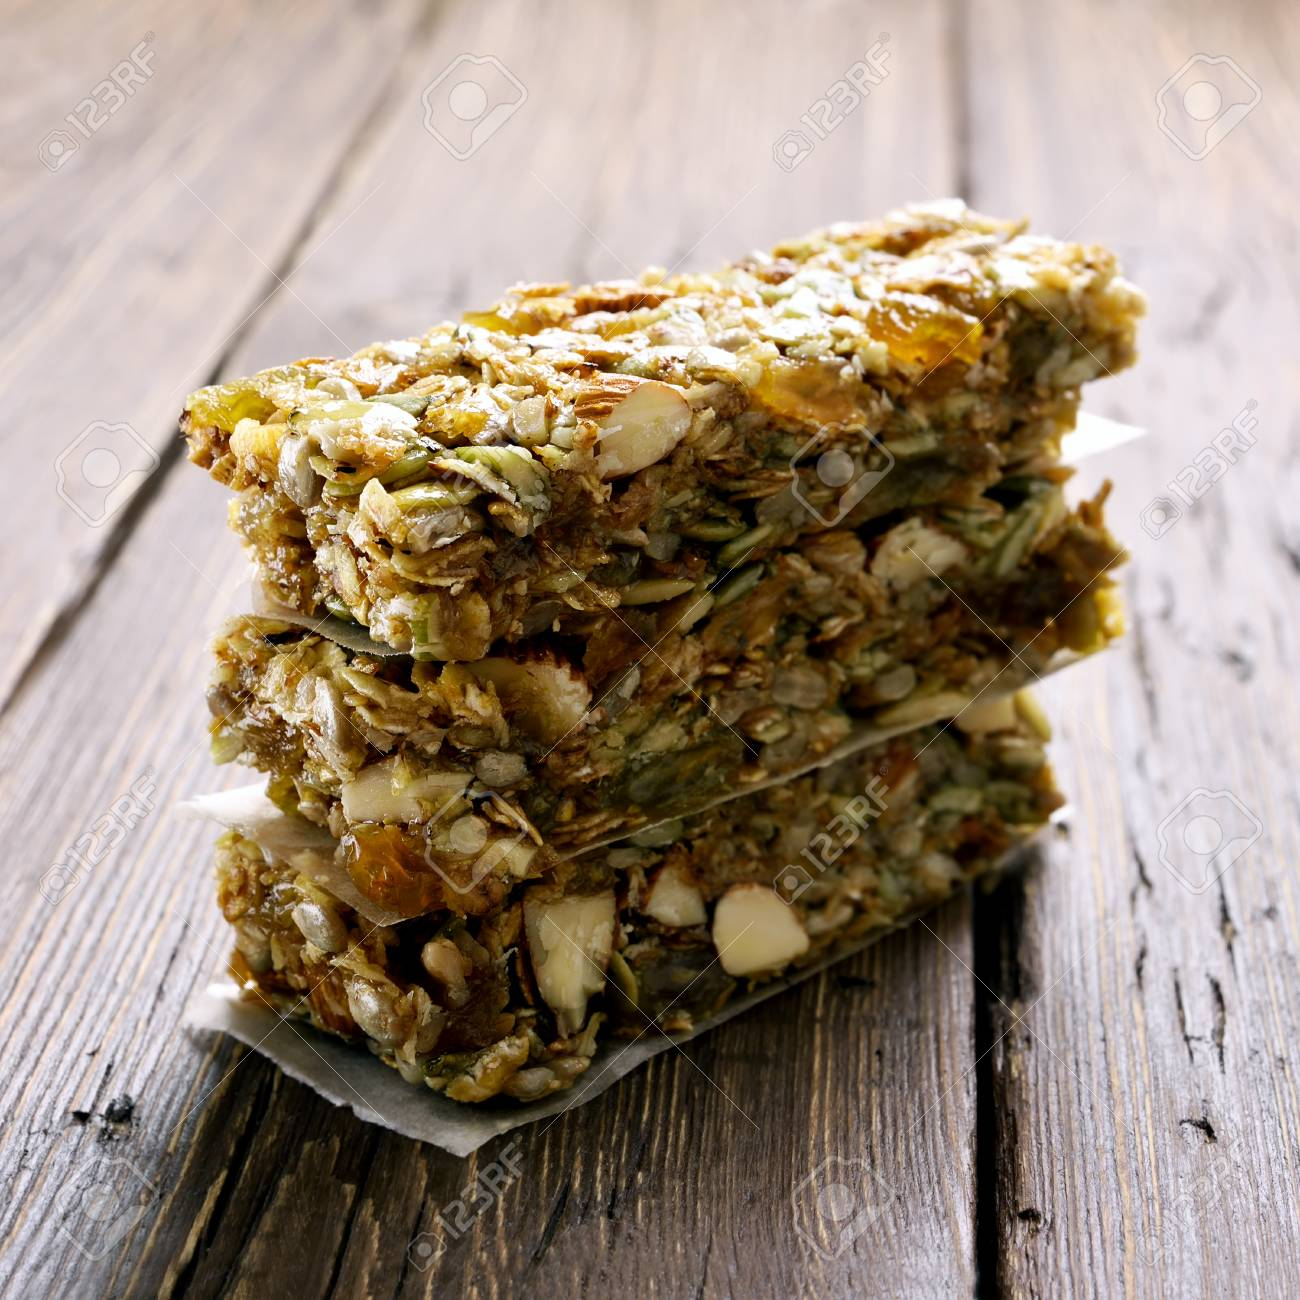 Stacked granola bars  Healthy energy snack on wooden table  Shallow